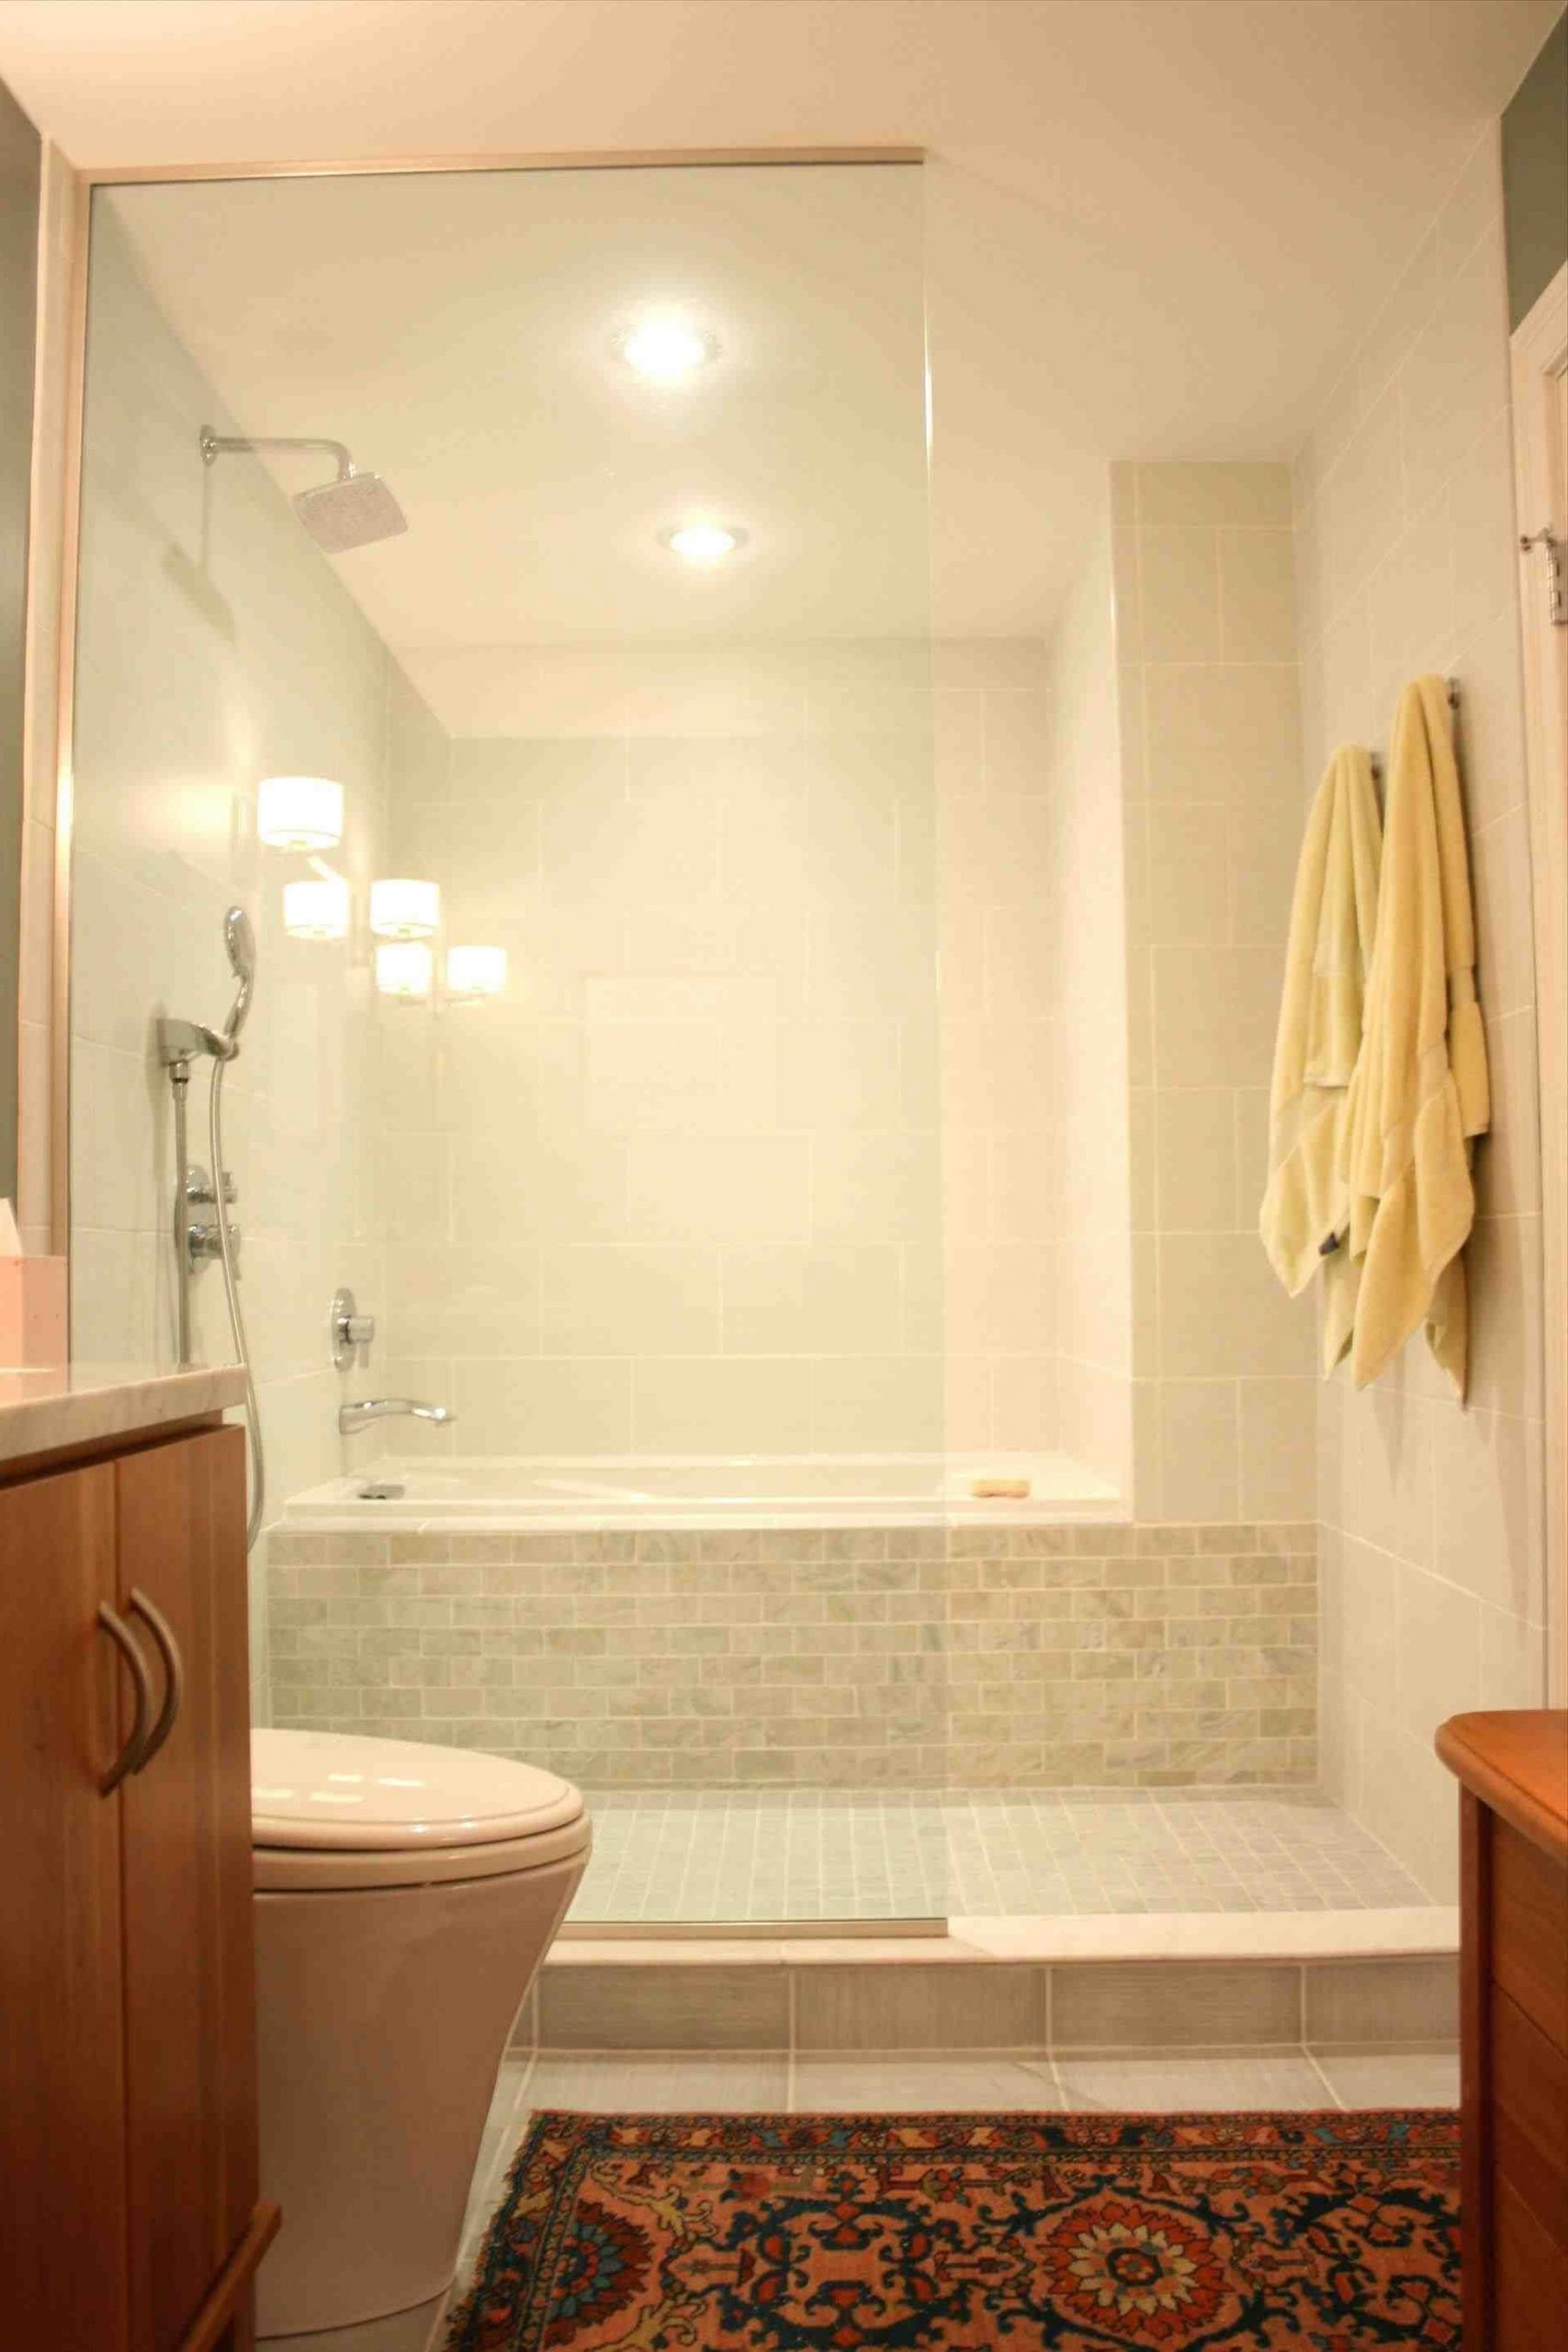 This Bath Shower Combo Lowes Lowes Shower Stall | Lowes Lowes Bathroom Idea Book